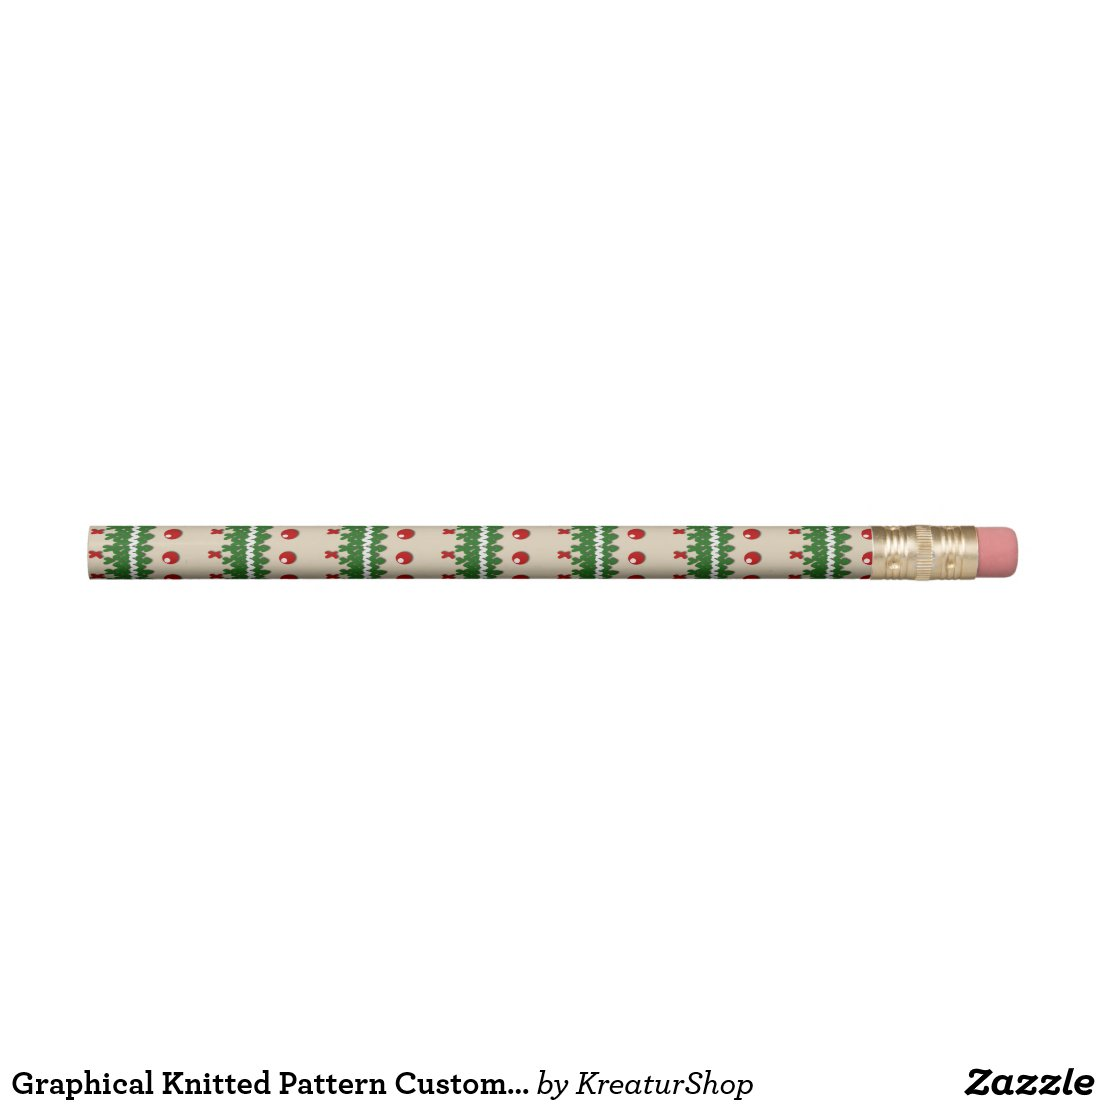 Graphical Knitted Pattern Custom Cream Color